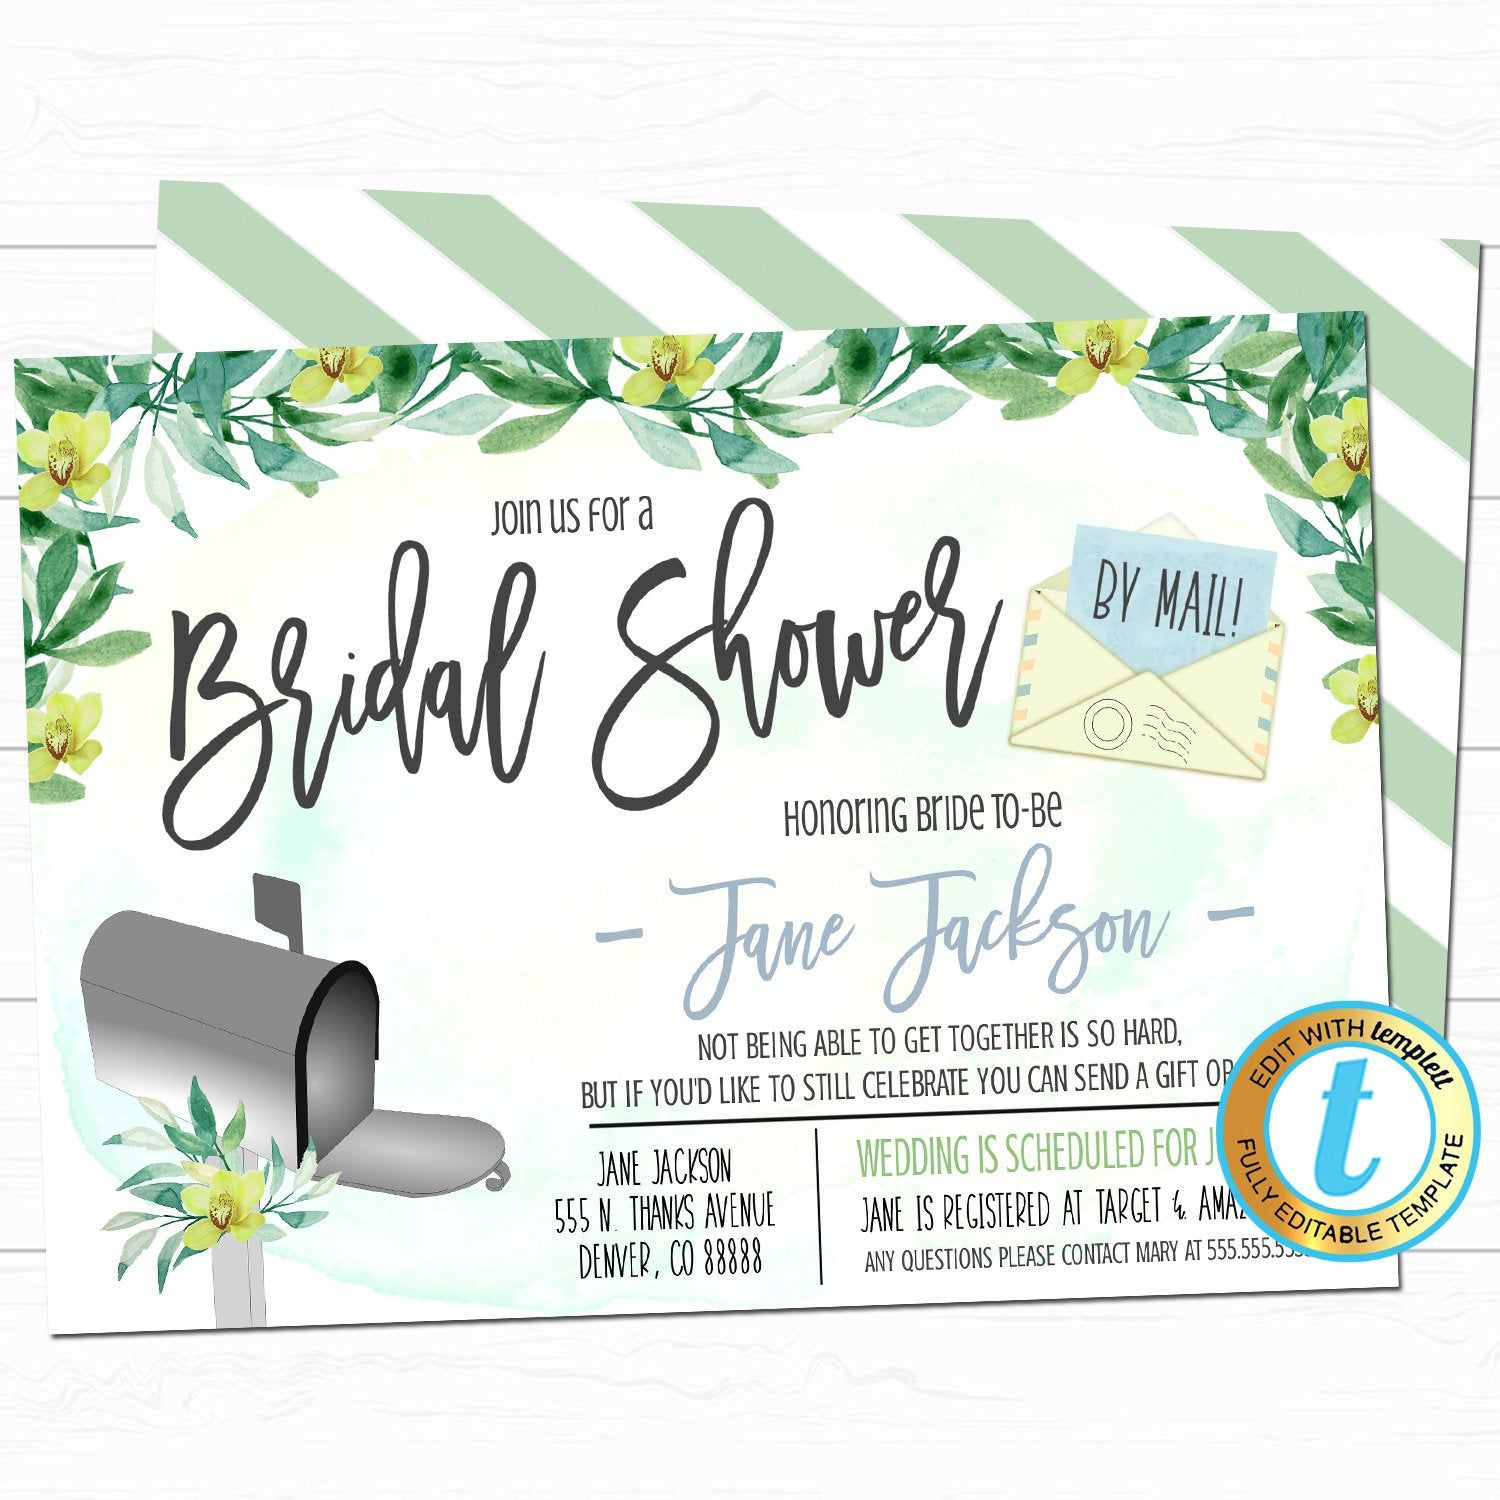 Shower By Mail Invitation Bridal Shower Baby Shower Wedding Etsy In 2020 Bridal Shower Invitations Bridal Shower Invitation Template